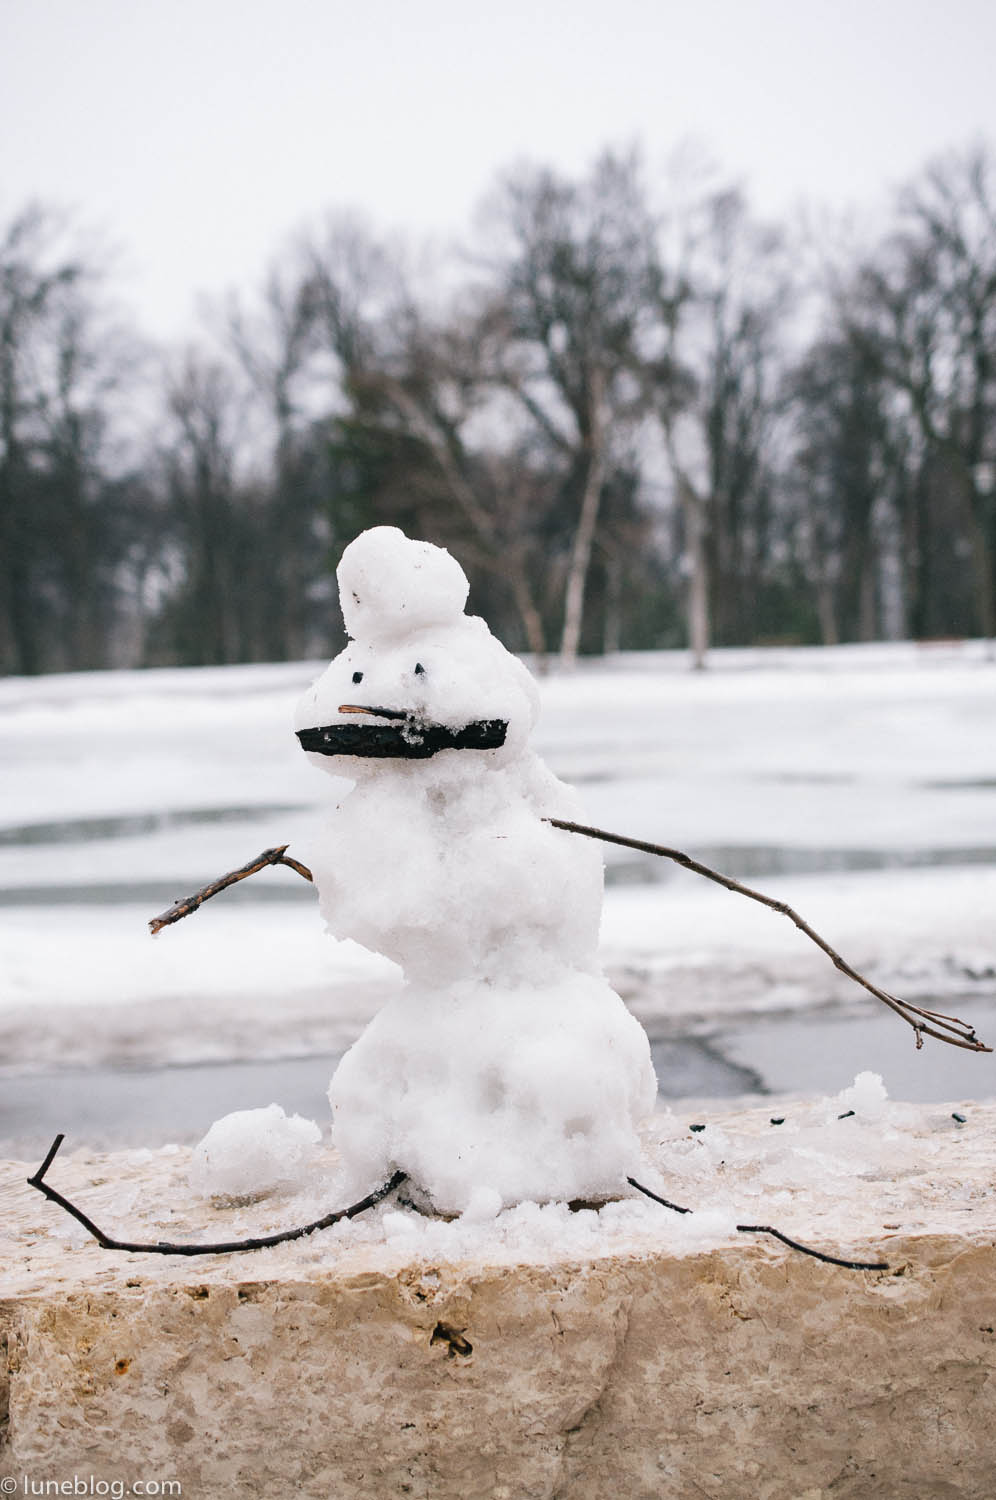 Lune Blog snowman (8 of 8).jpg